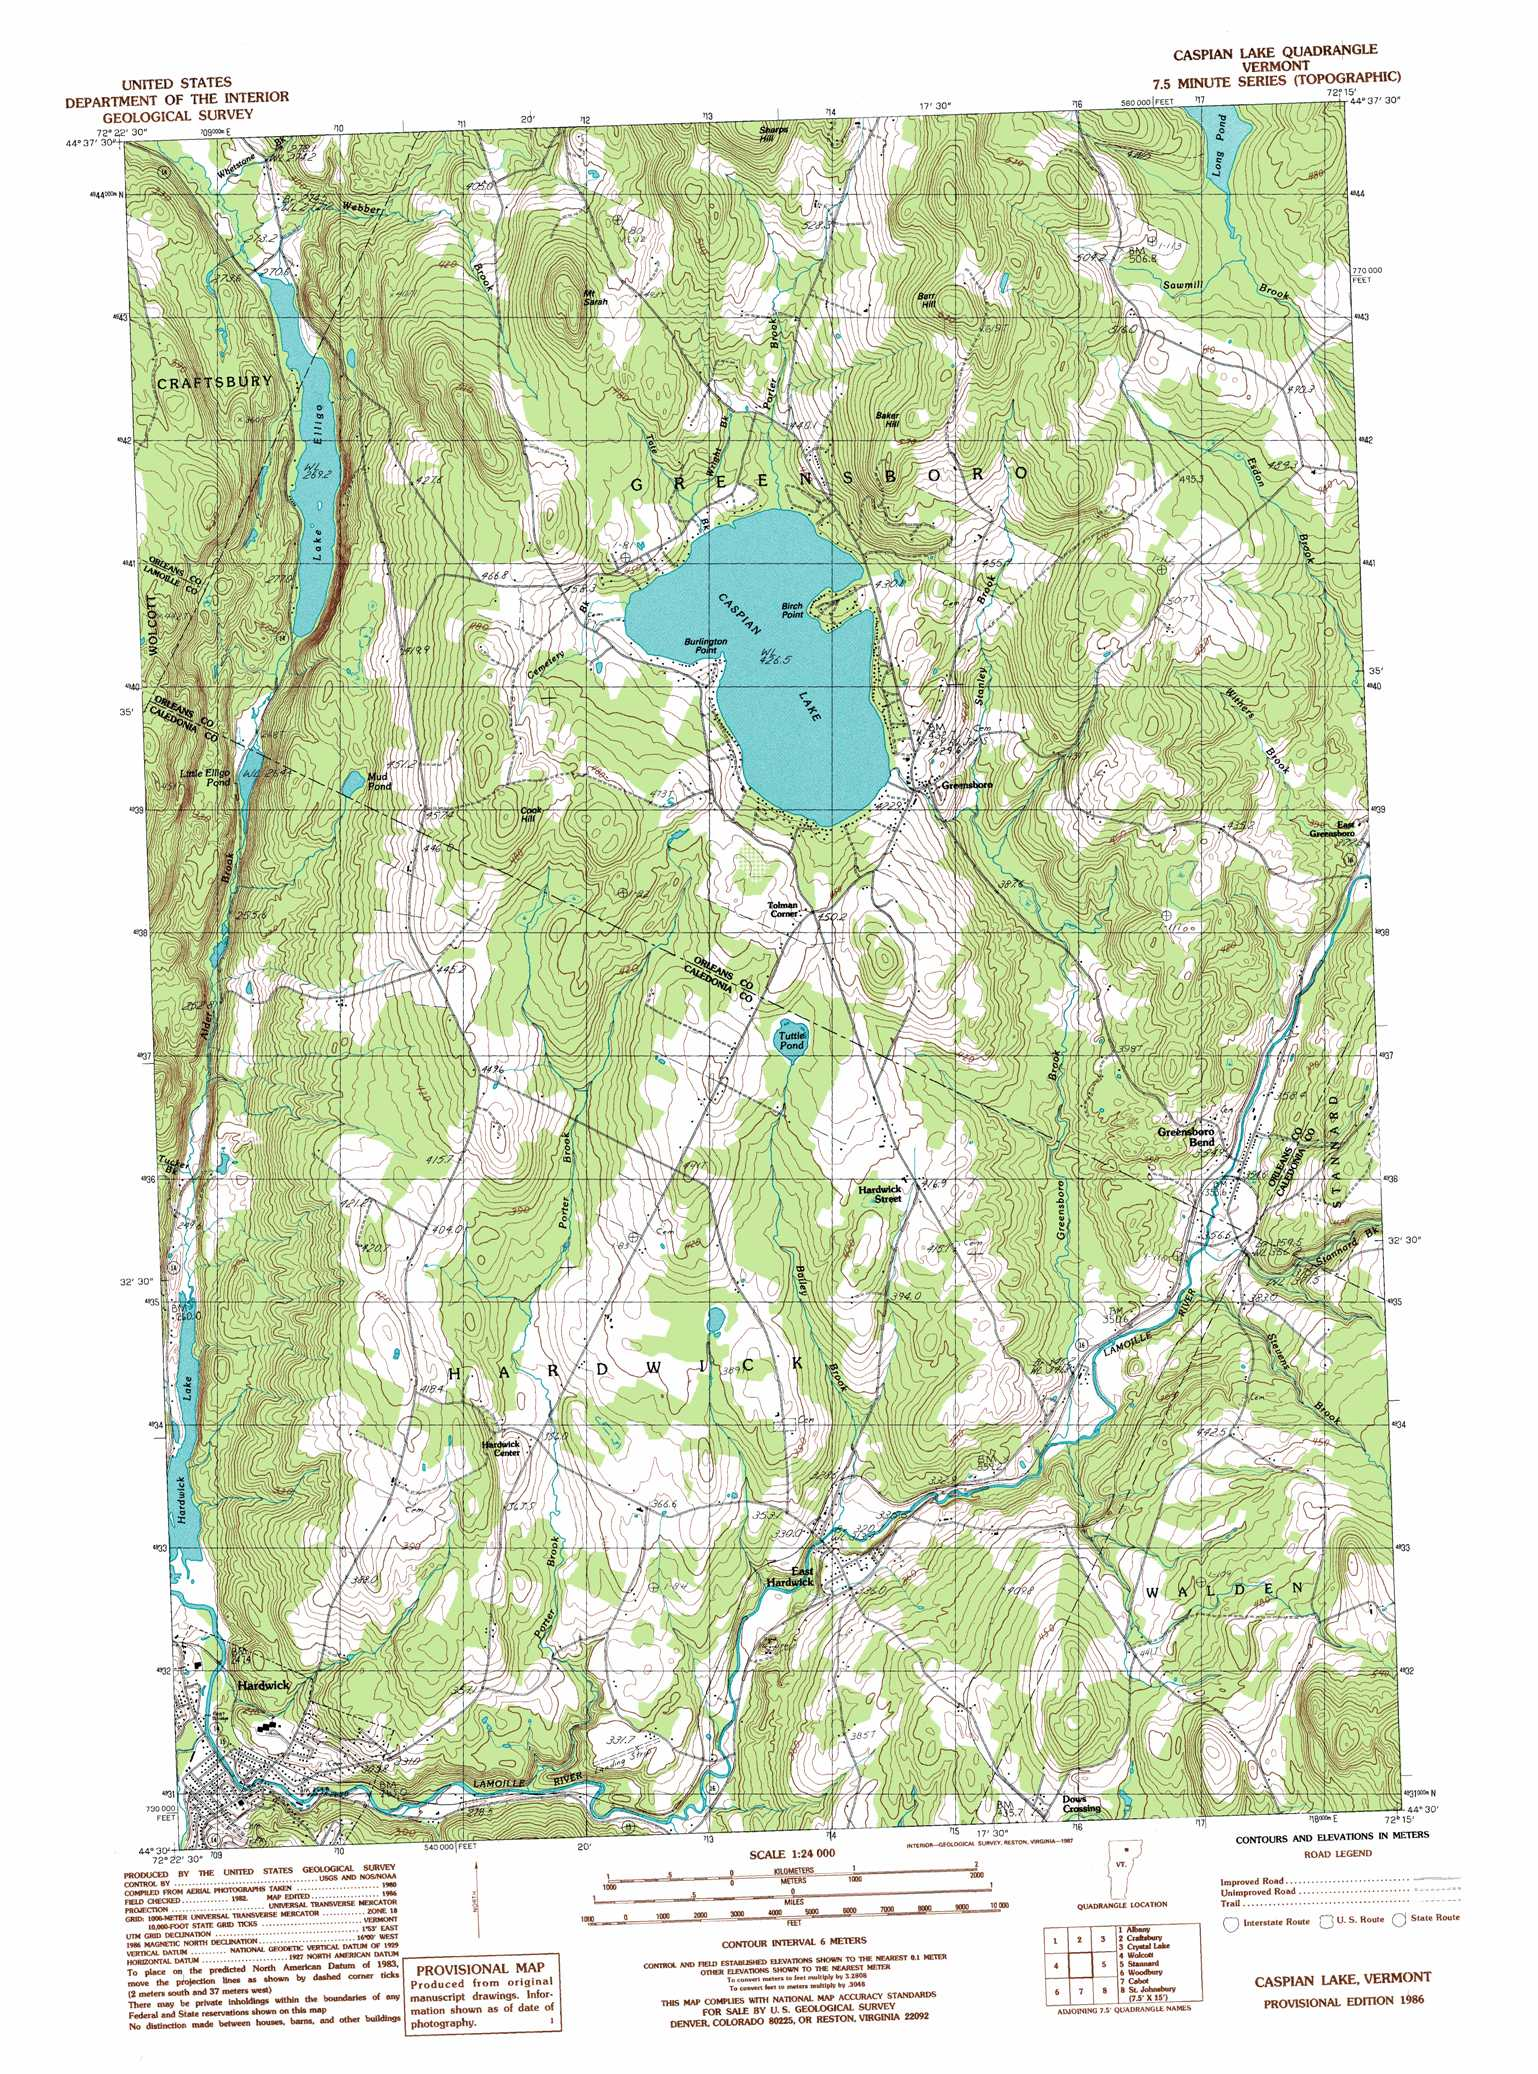 Caspian Lake topographic map VT USGS Topo Quad 44072e3